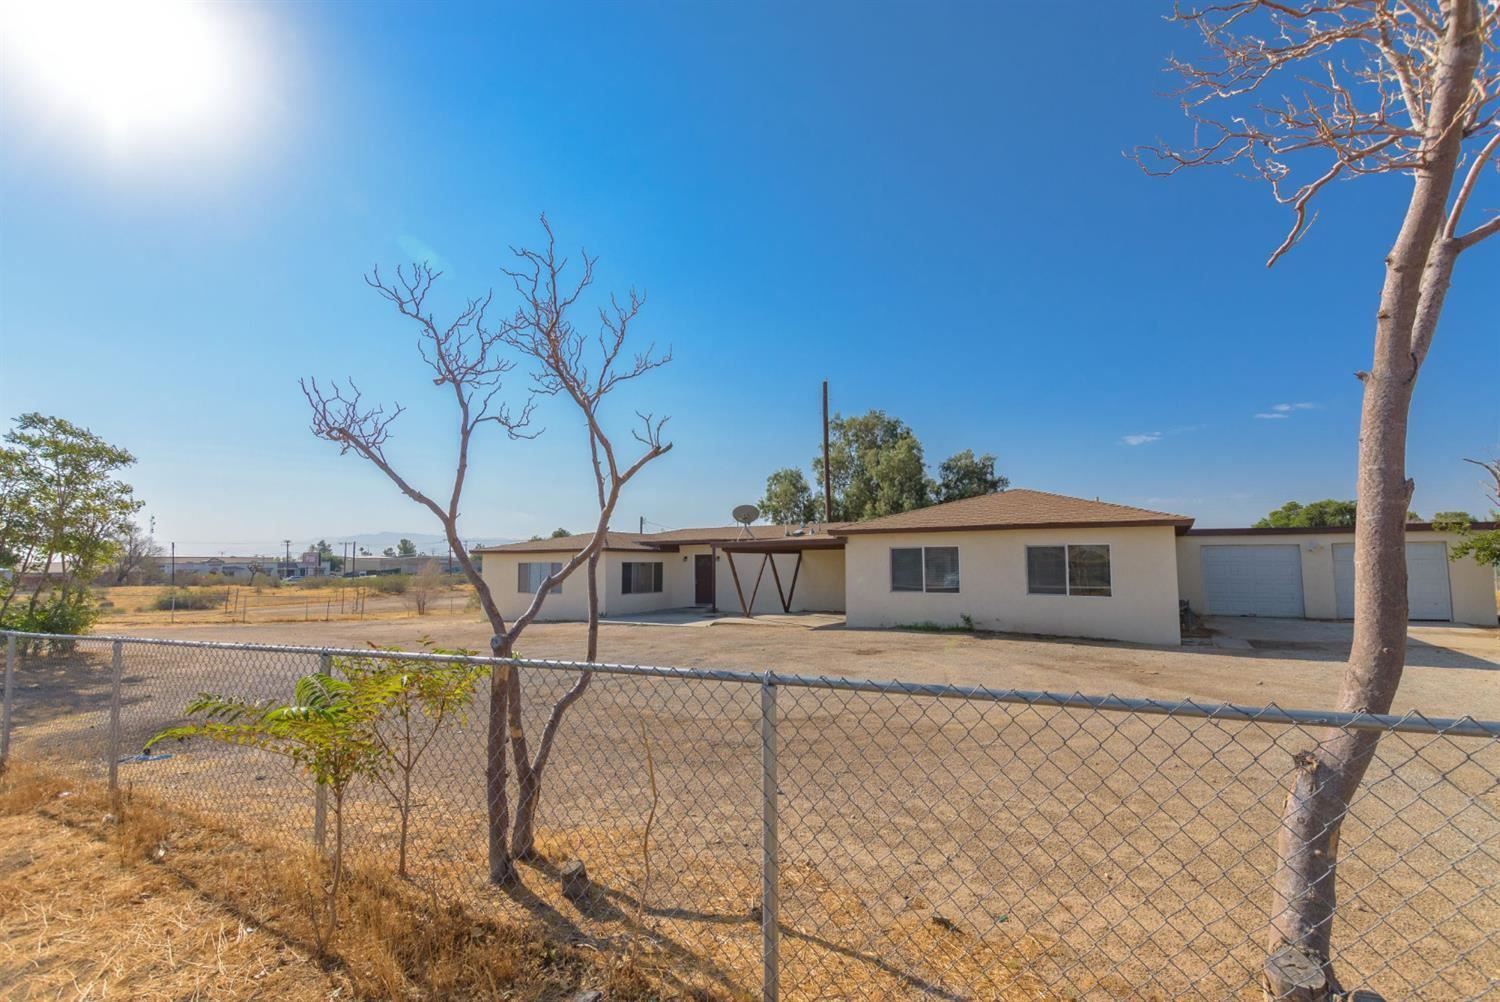 15211 Cholame Road, Victorville, CA 92392 - MLS#: 522560